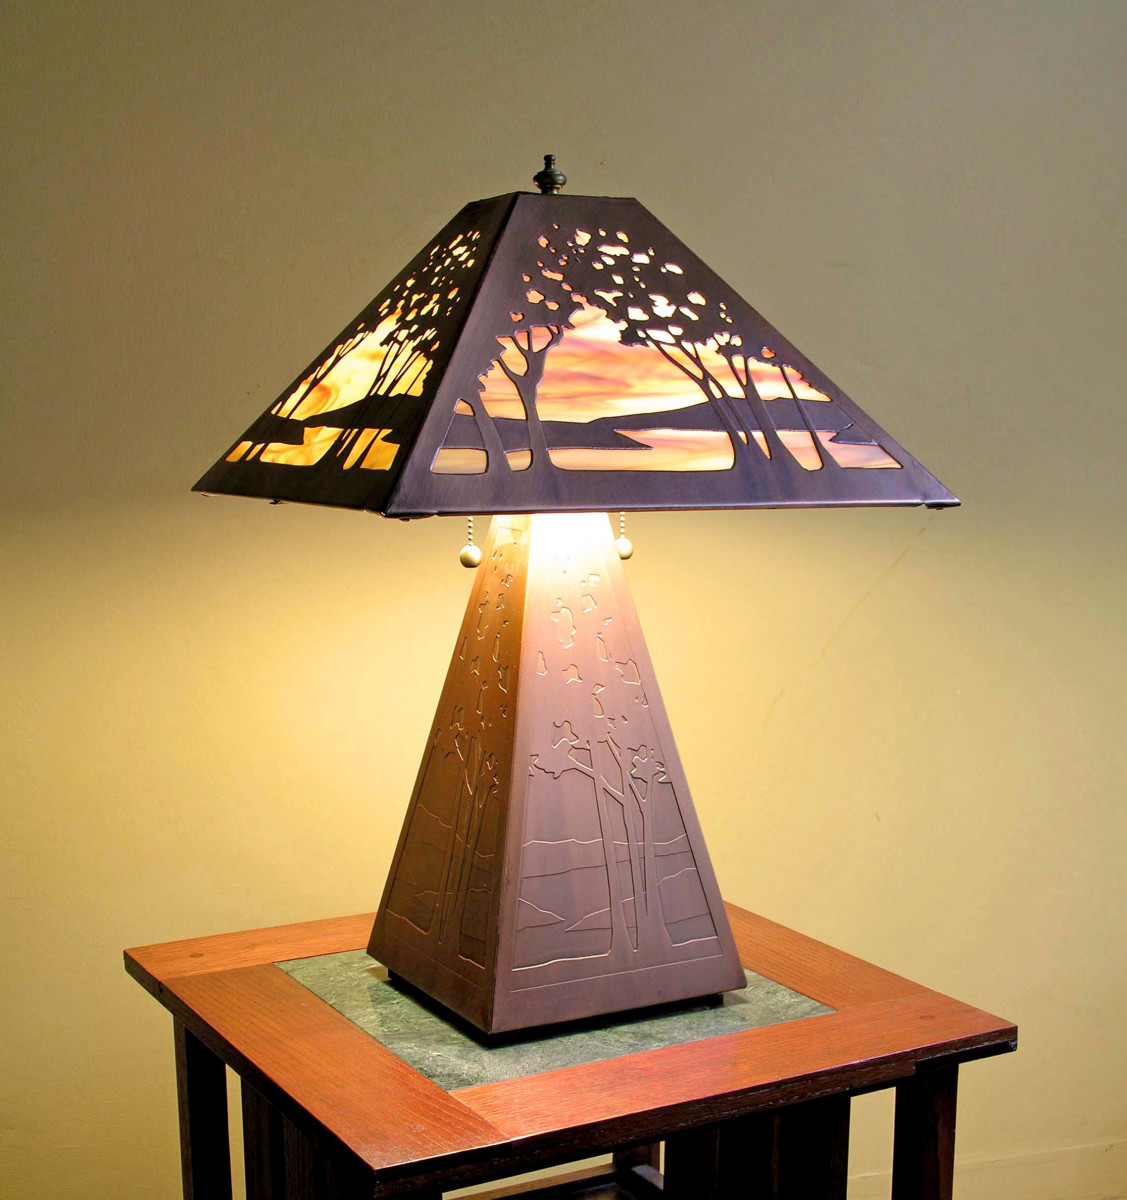 Trees, hills, and water in the 'Landscape' table lamp suggest the Pacific Northwest, where the artist was born.